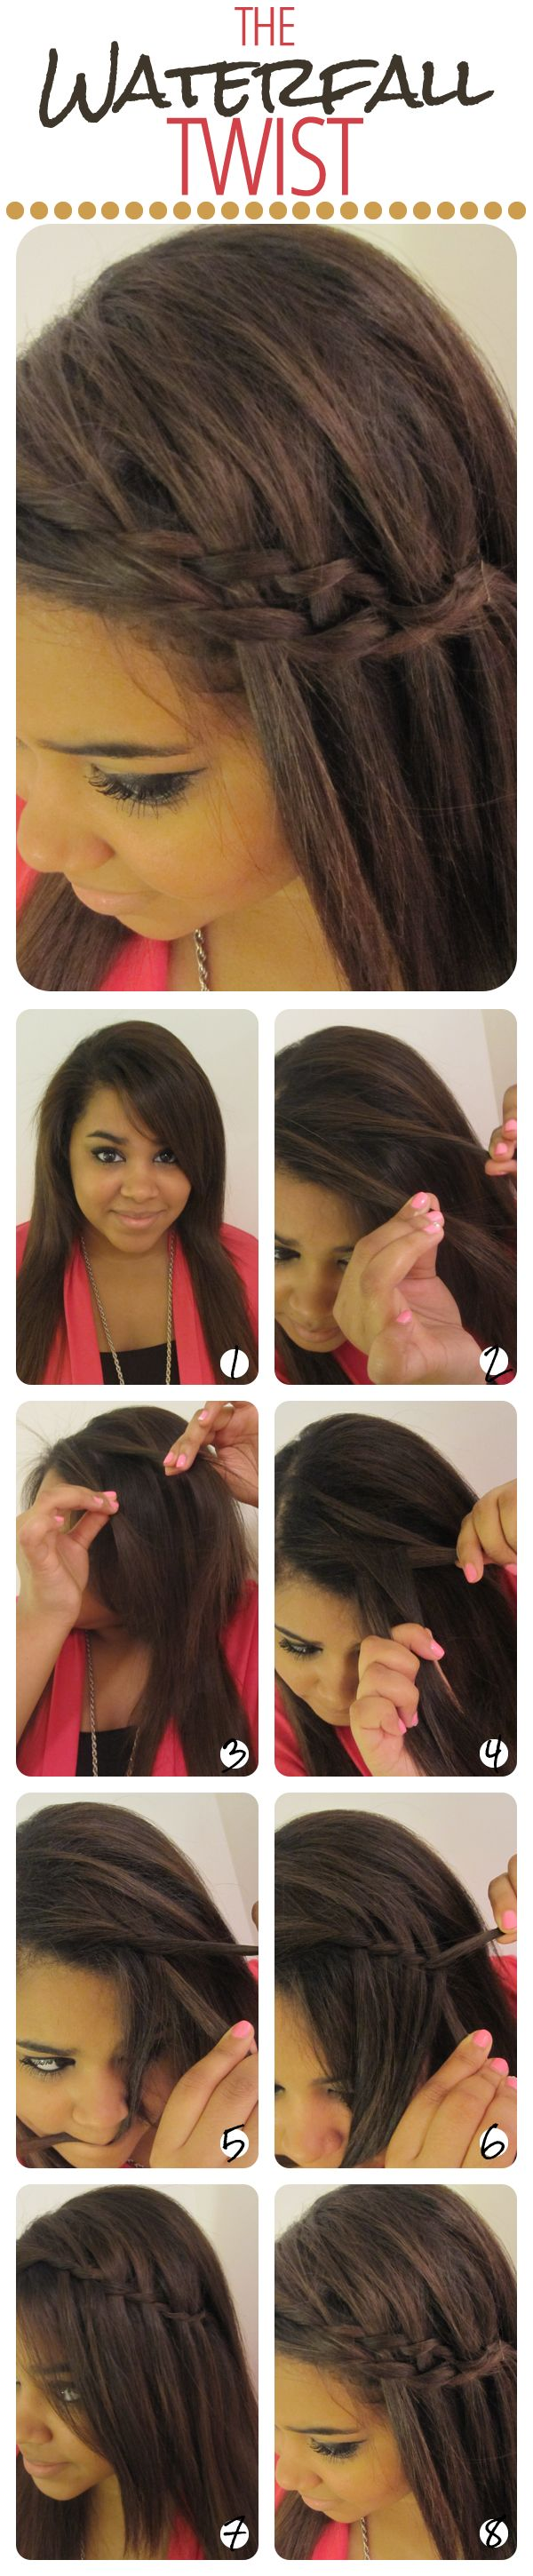 The Waterfall Twist. So cute! I need to be less spastic so I can pull this off (: